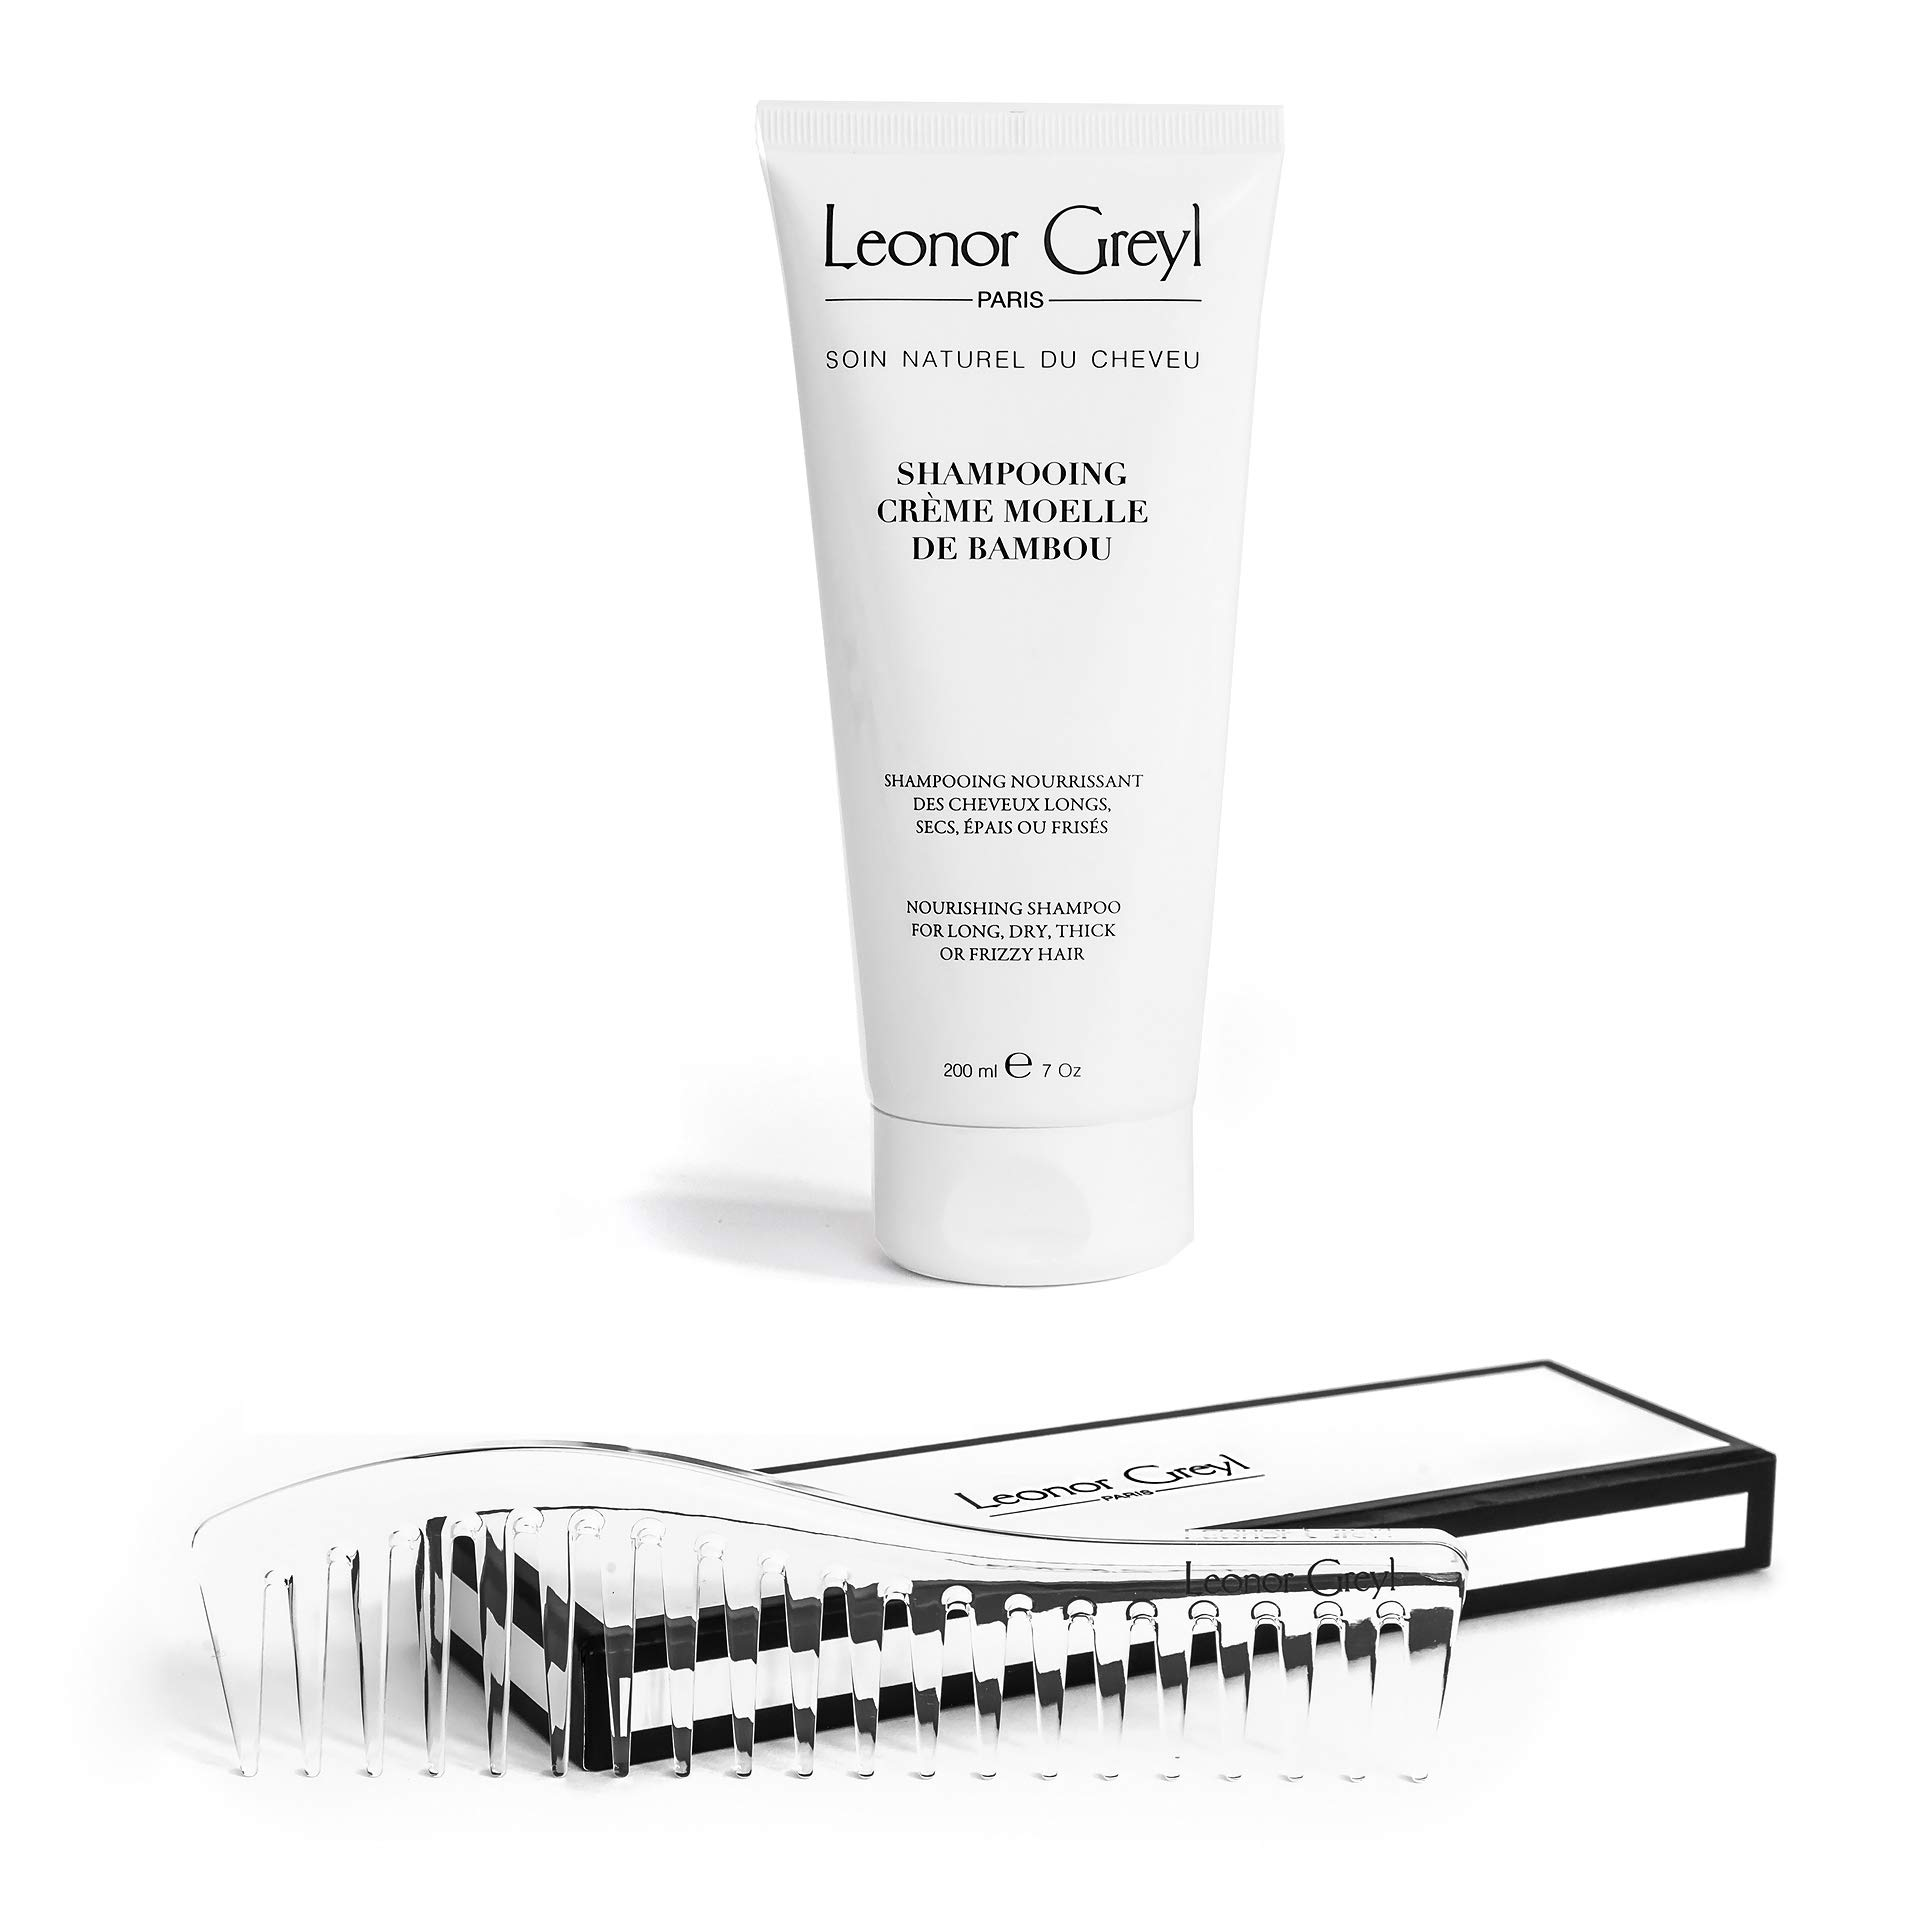 Leonor Greyl All Natural Organic Shampoo 6.7 oz. with BONUS Wide Toothed Comb for Smooth Silky Hair - Bamboo Extracts Repairs Dry Damaged Hair - Helps Hair Growth - Strengthens and Volumizes Hair by Leonor Greyl Paris